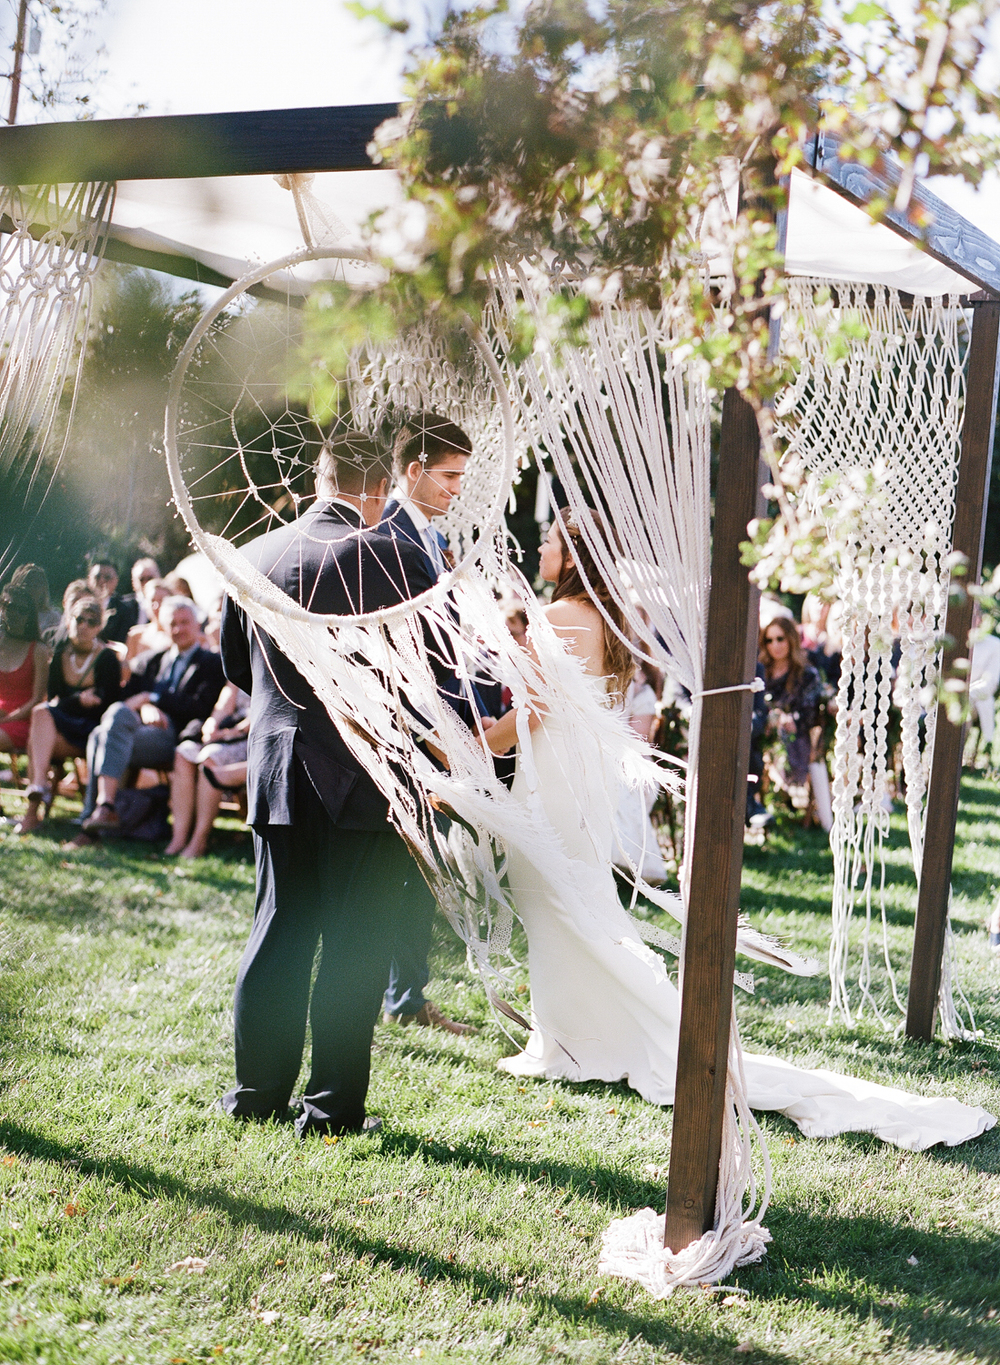 The dreamy macrame ceremony space creates a romantic vibe as the couple exchanges vows; photo by Sylvie Gil